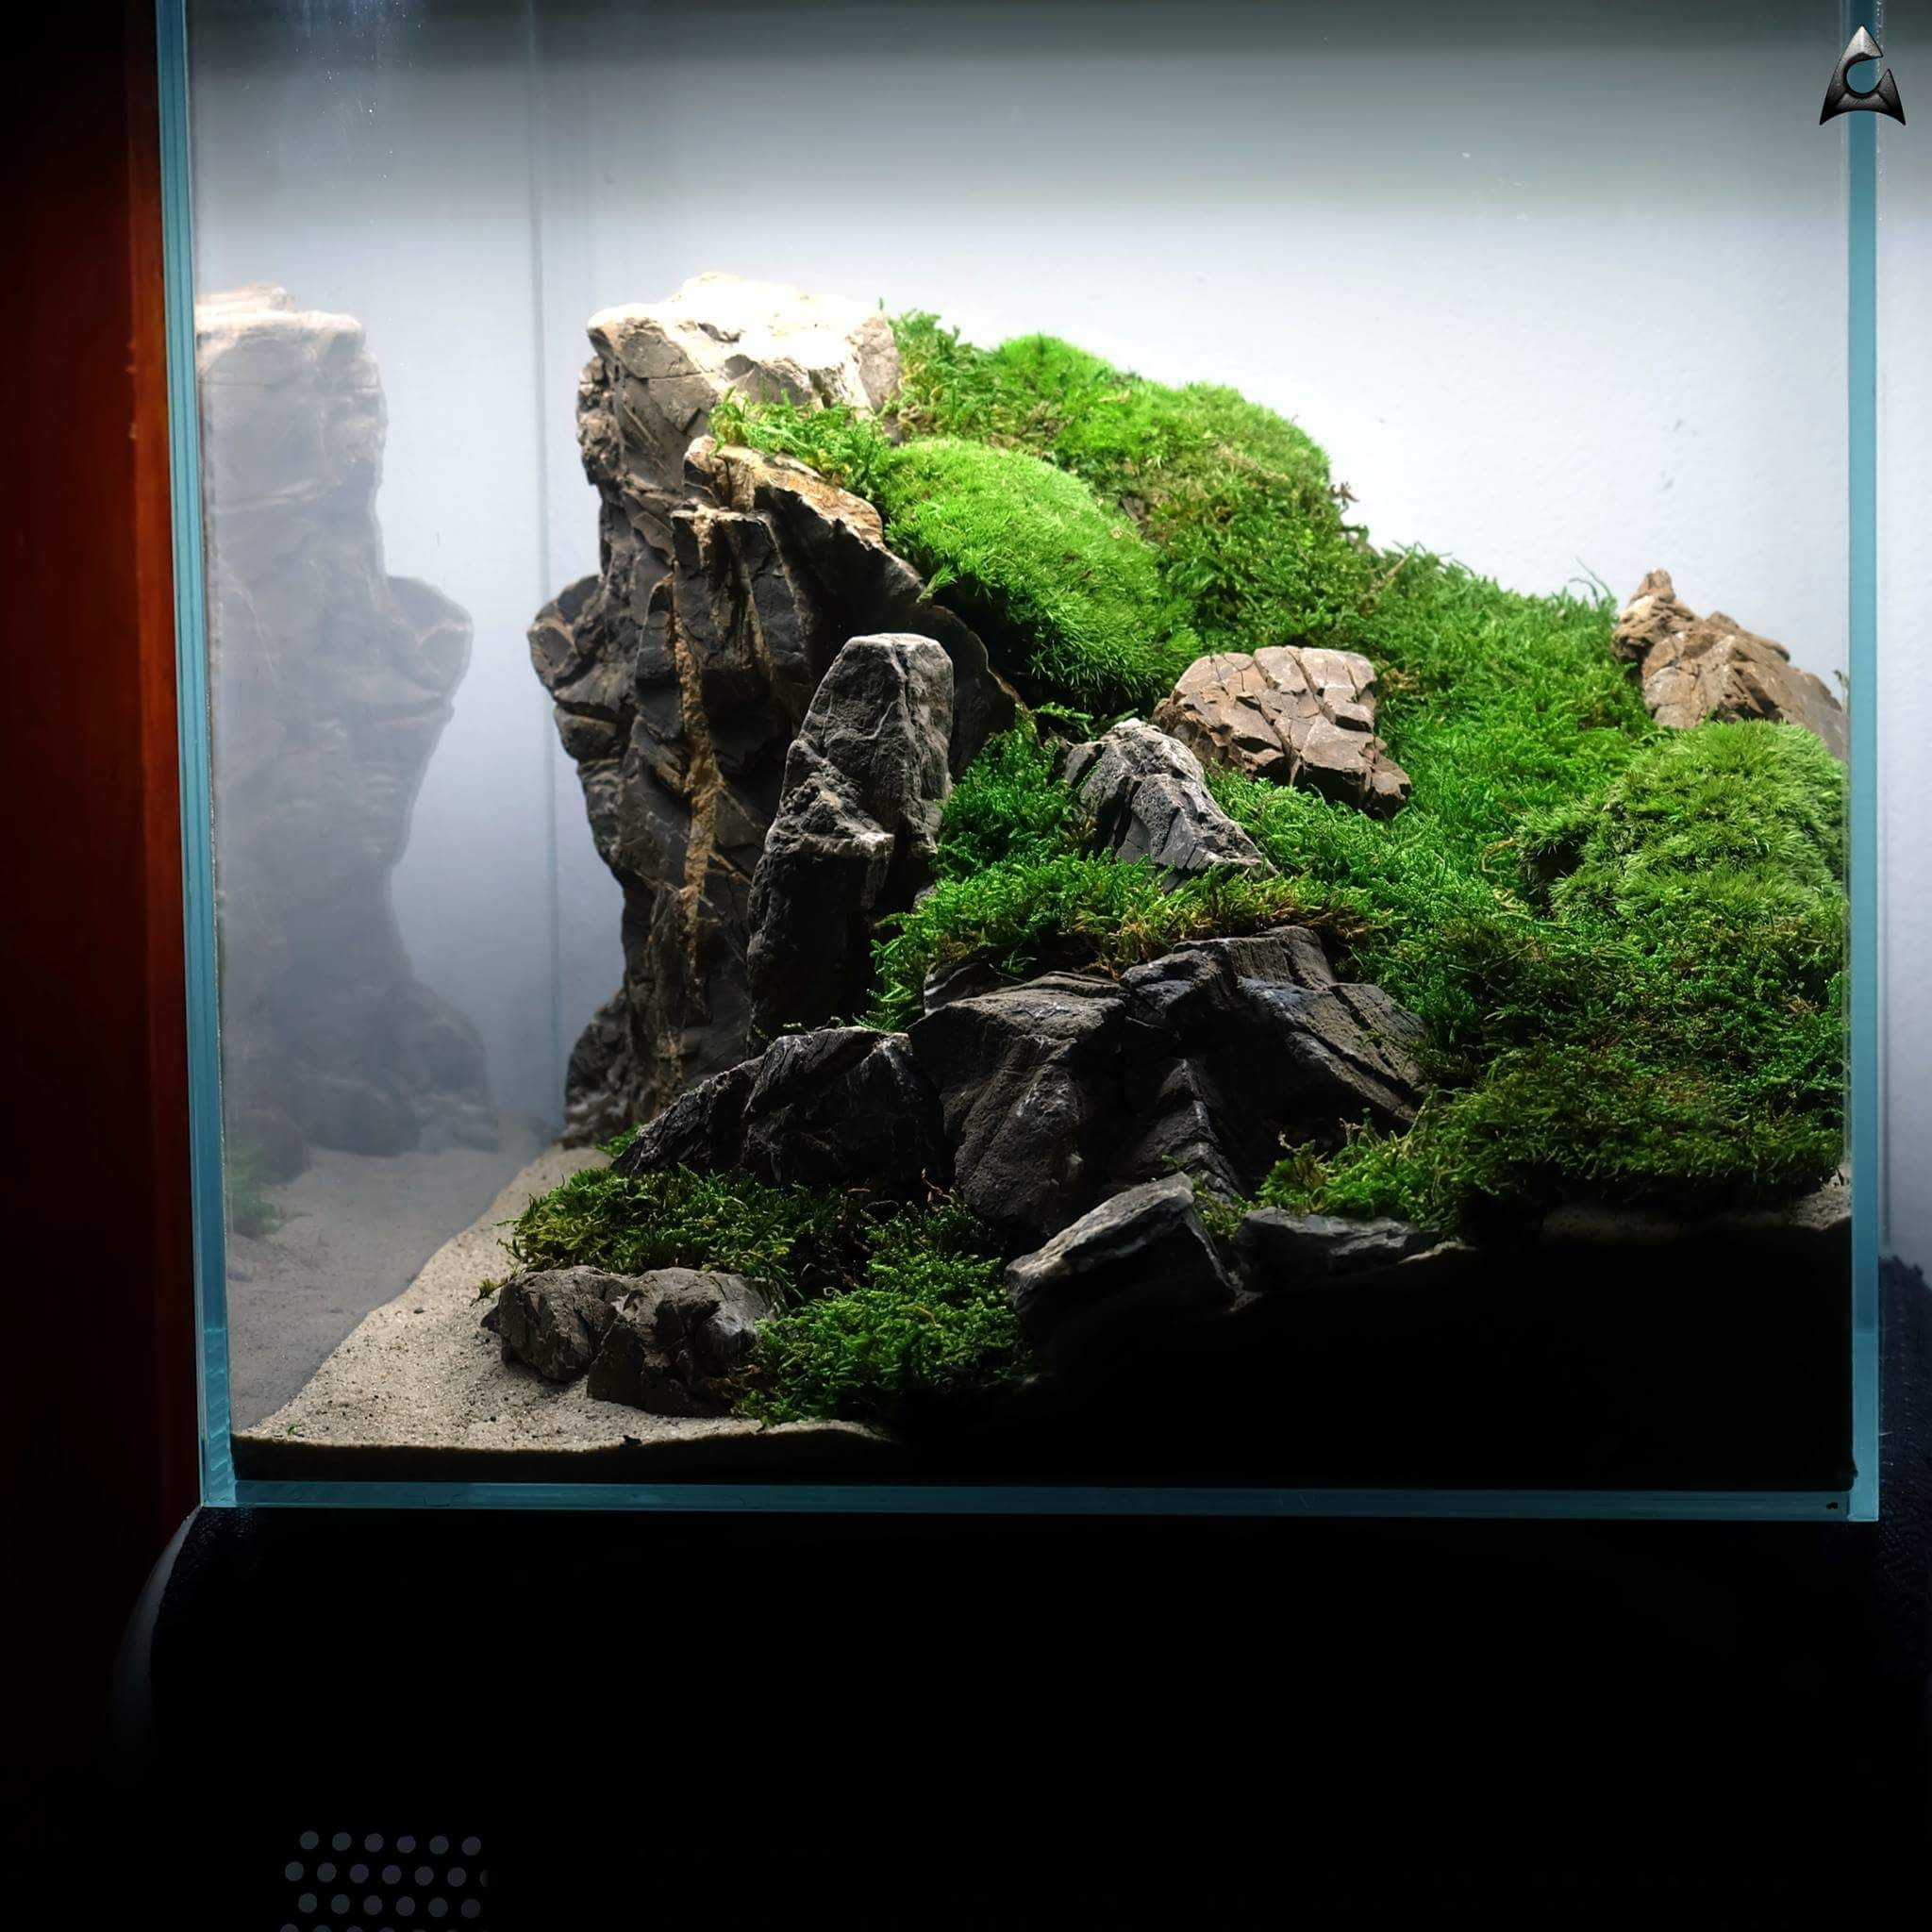 Home Aquarium Design Ideas: DIY Fish Tank Decorations Themes Aquascaping, Fresh Water